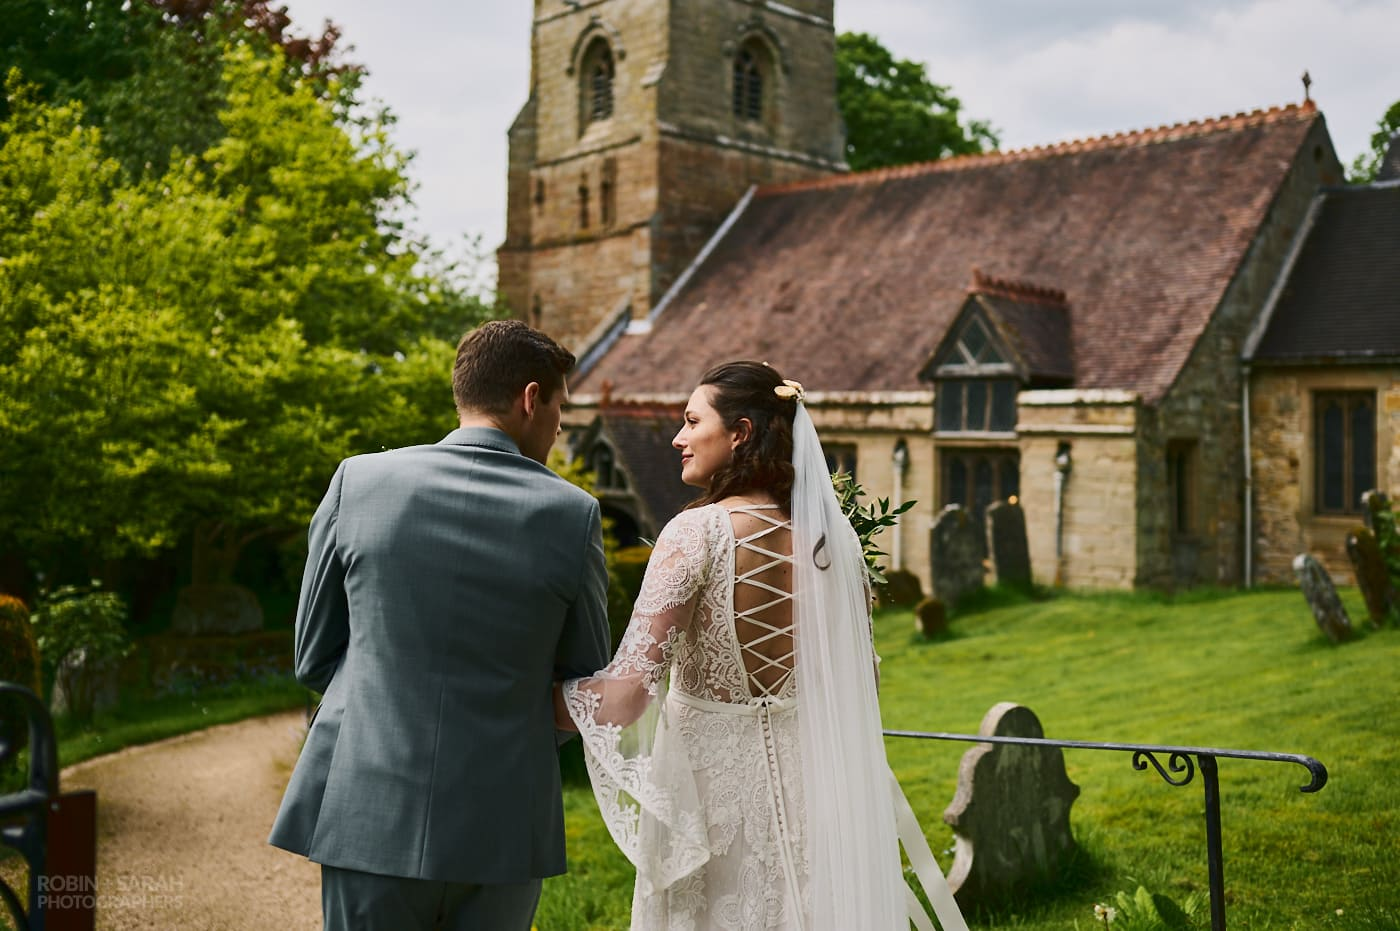 Bride and groom walking together at St Leonard's church Beoley